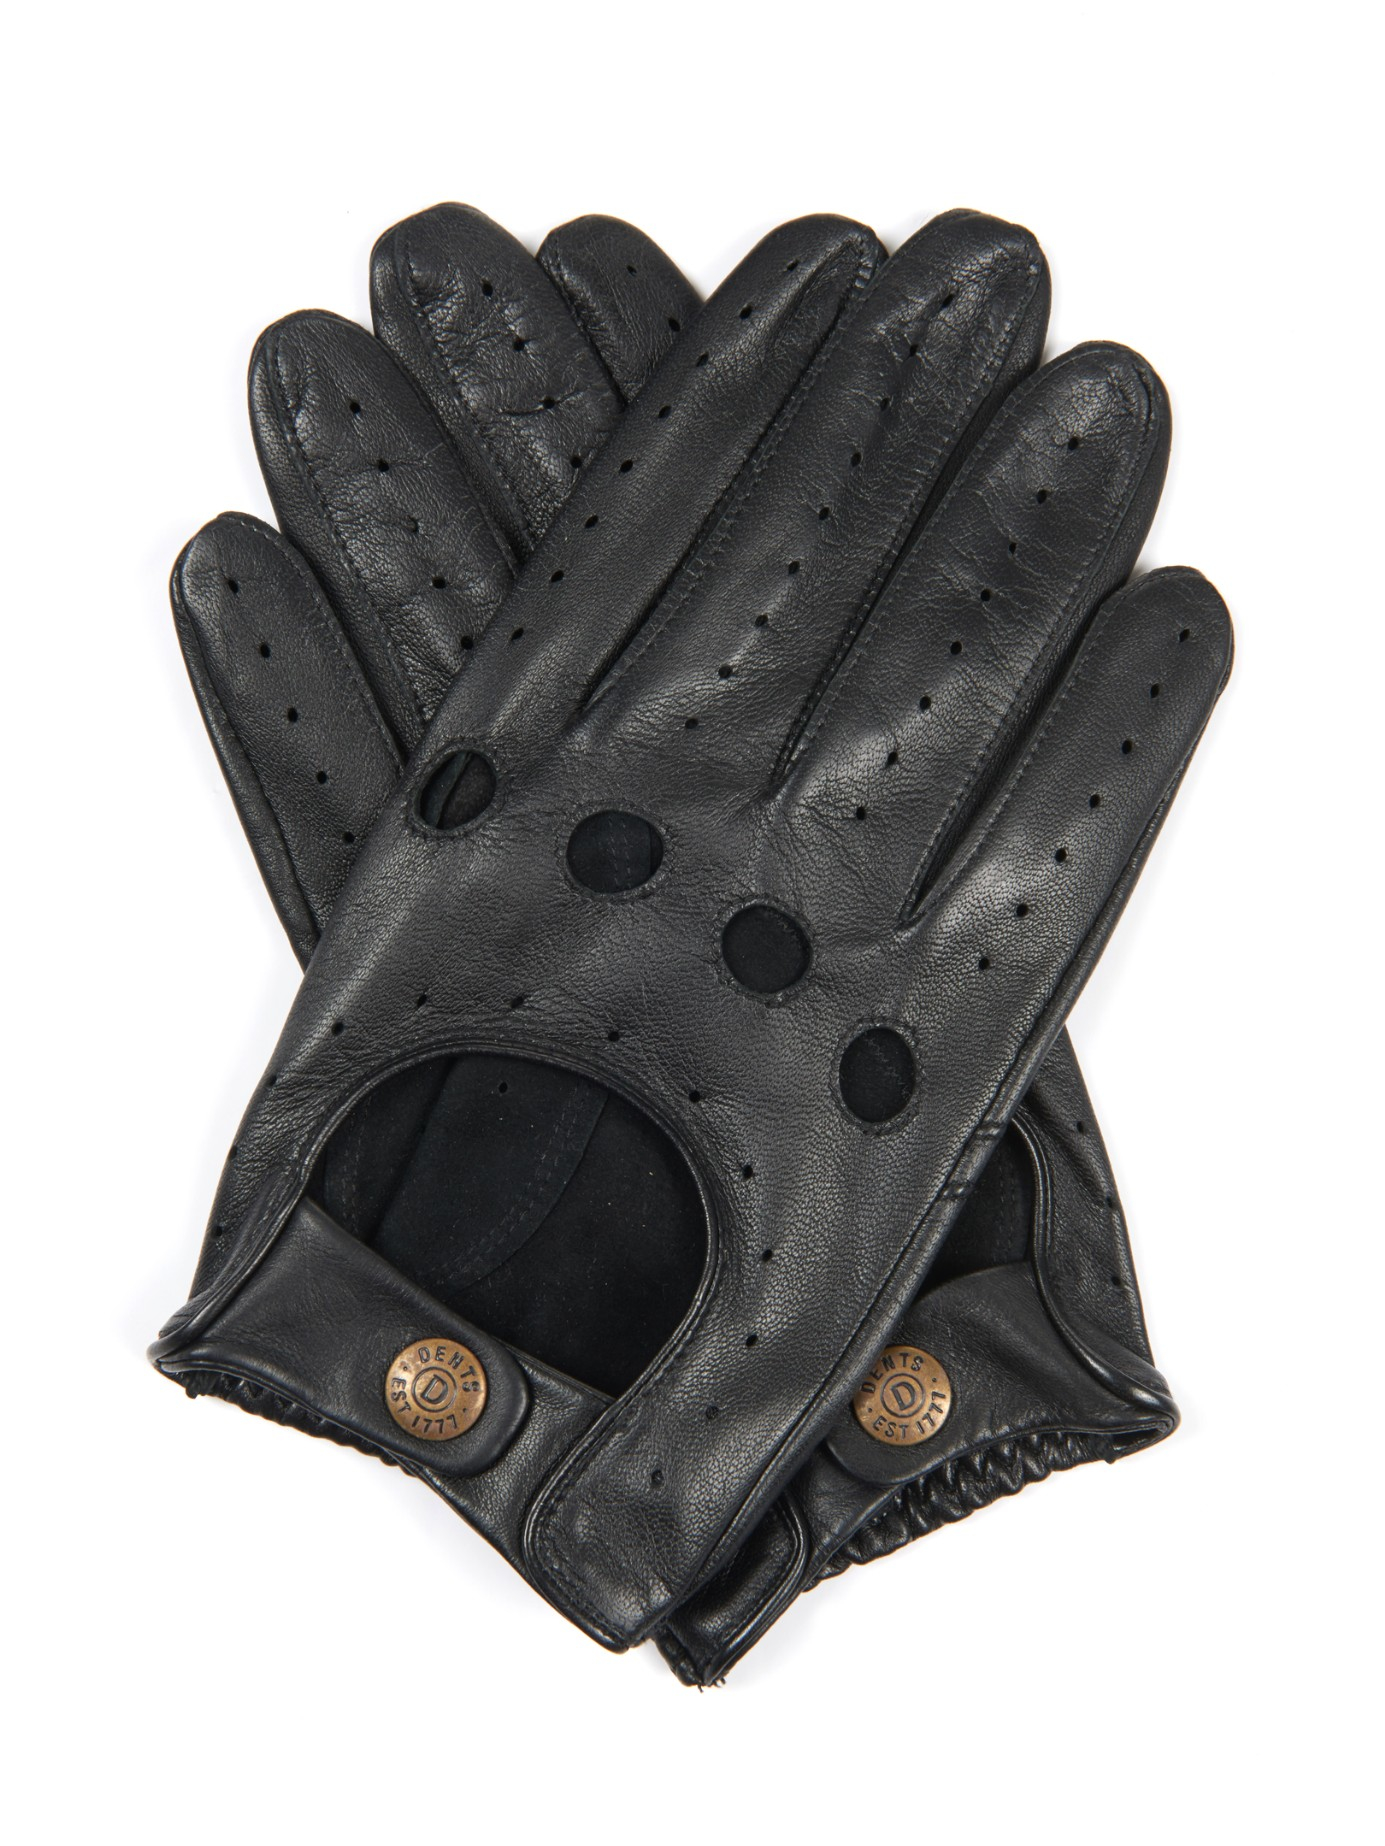 Leather driving gloves macys - Gallery